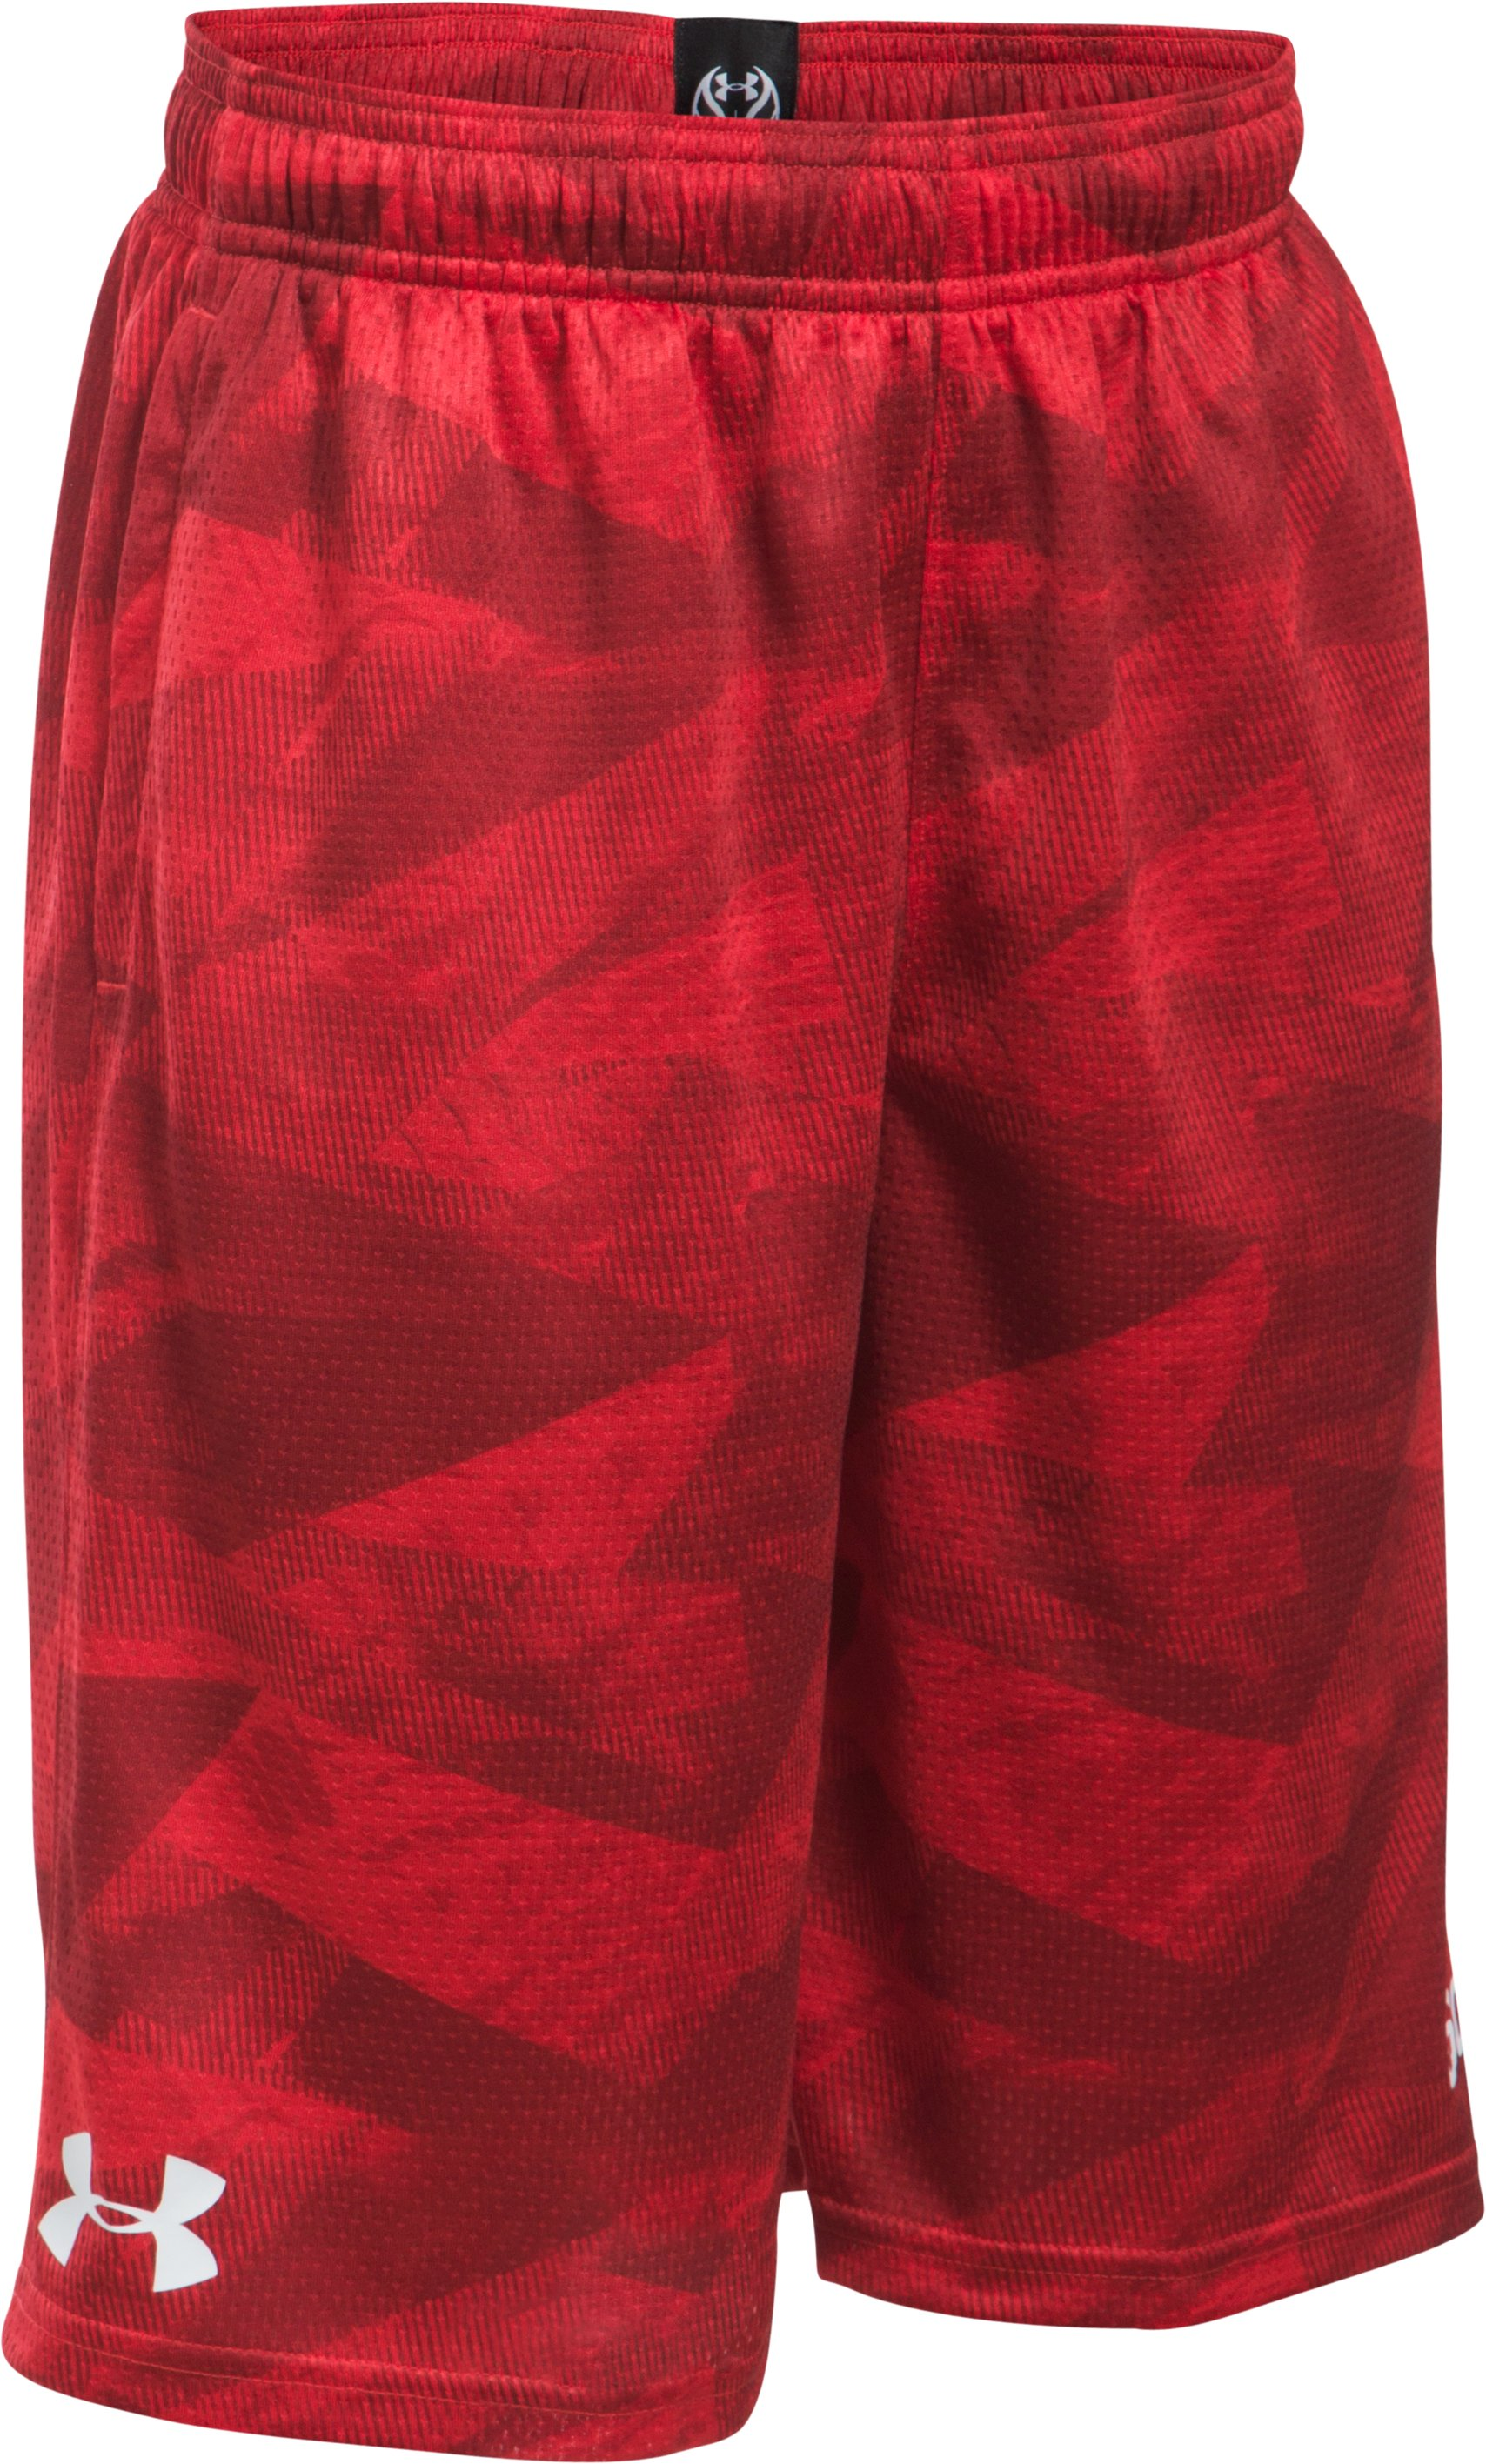 Boys' SC30 Essentials Printed Shorts, Red